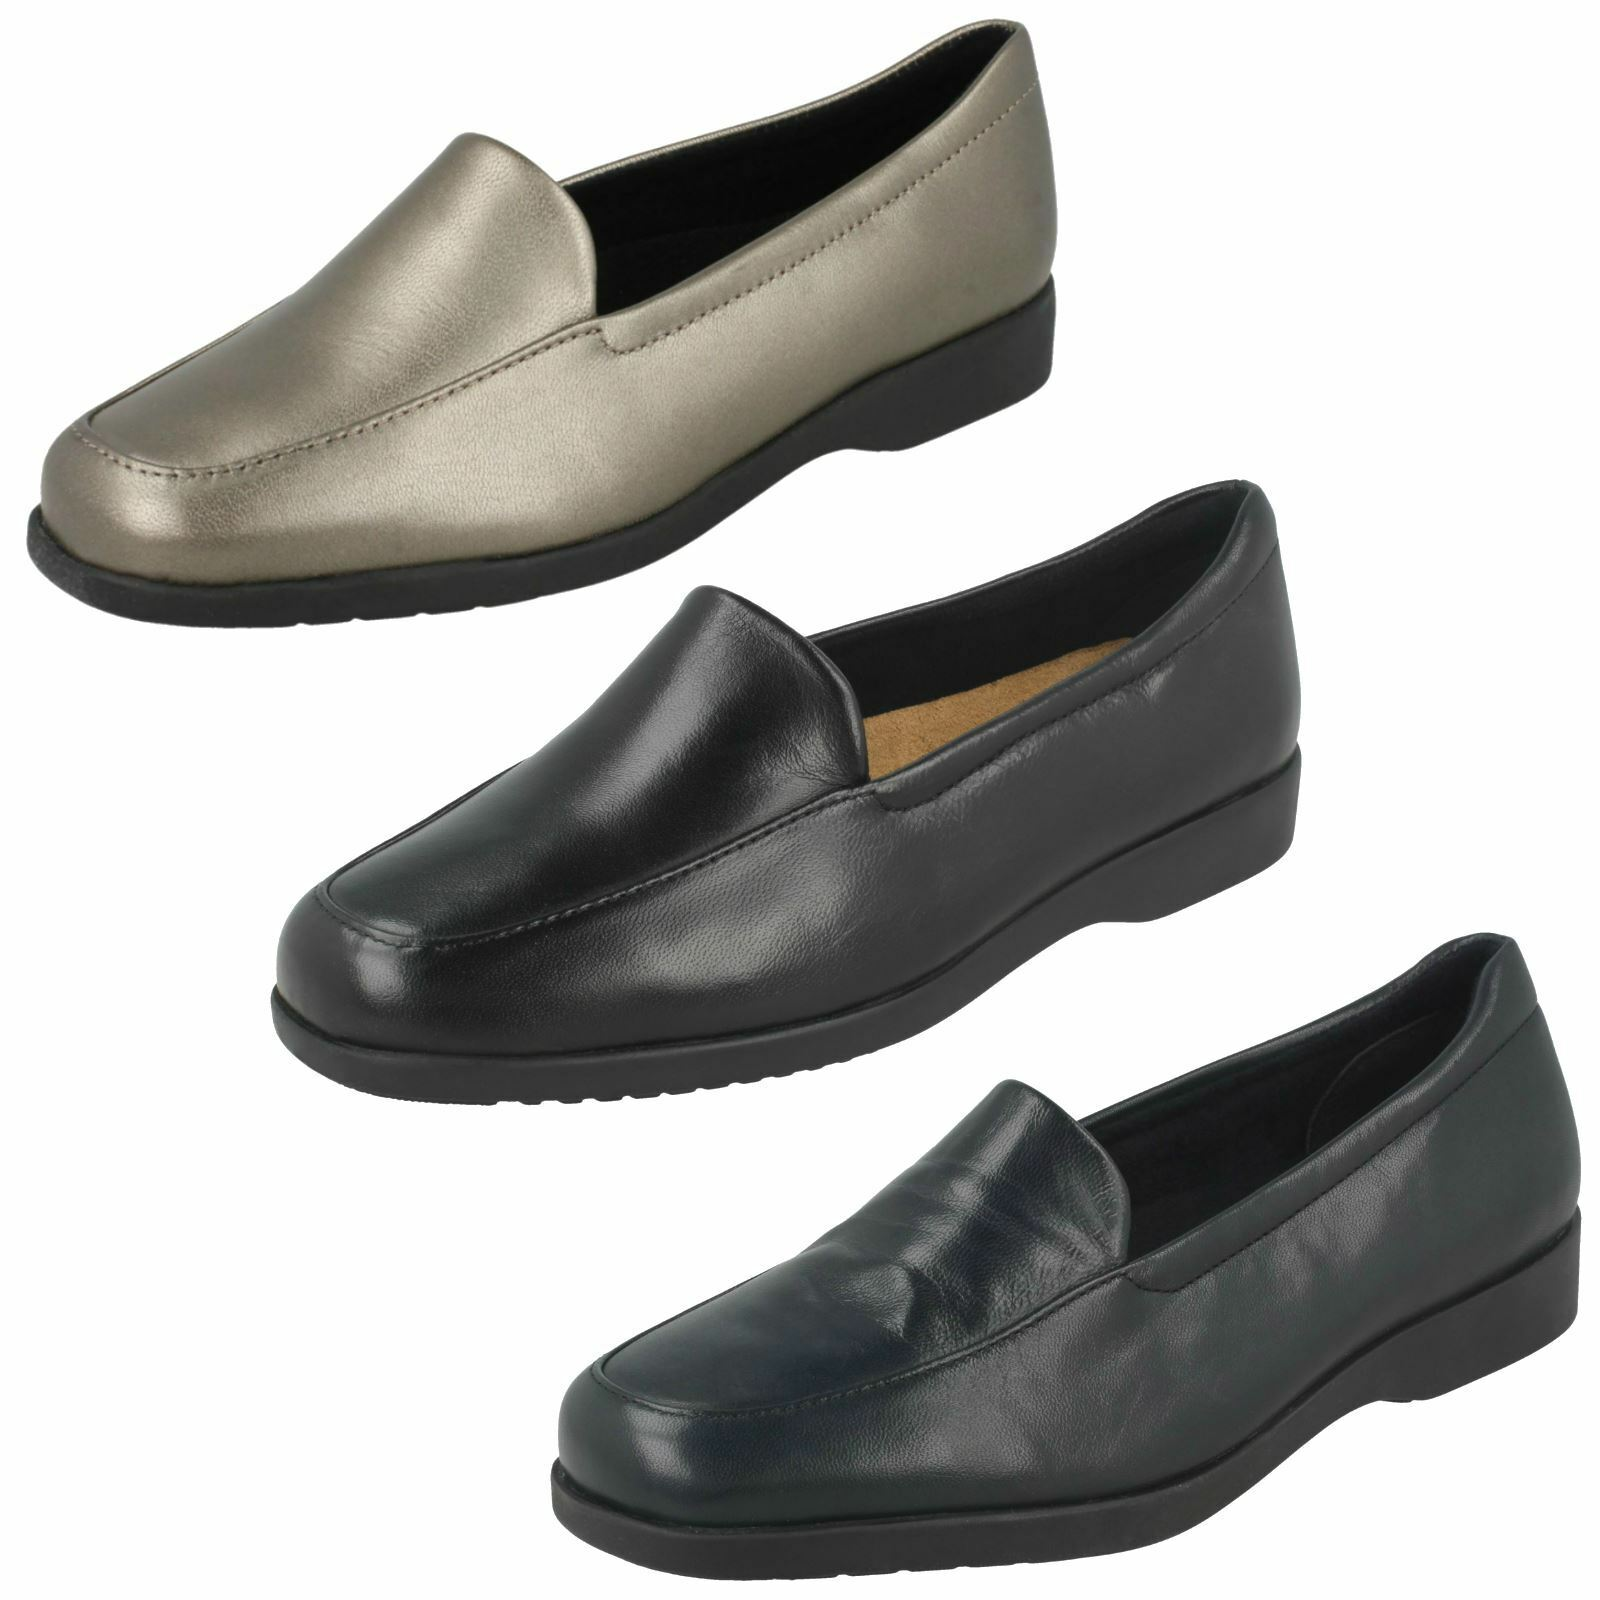 Ladies Clarks Flat Loafer Style shoes - Georgia